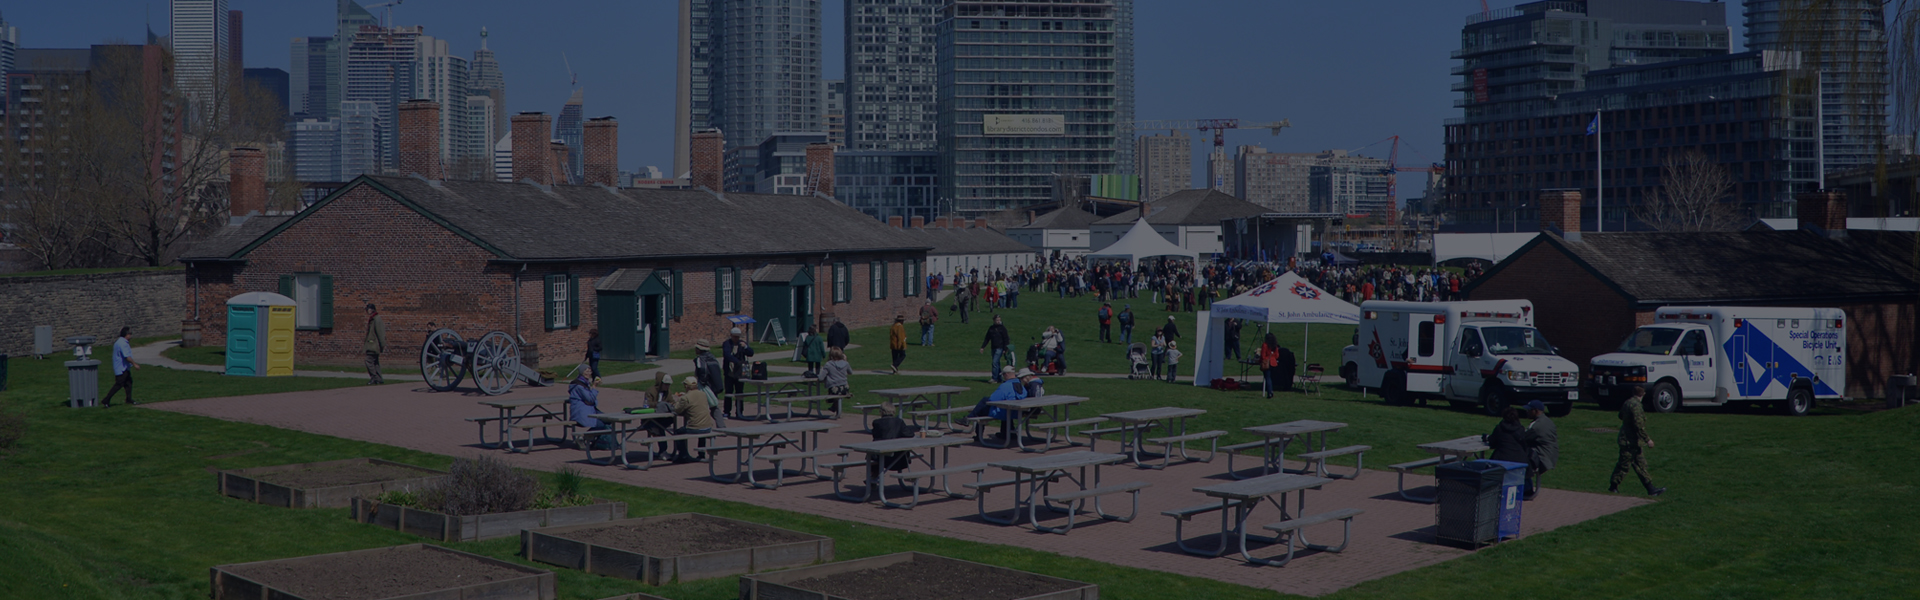 Fort York Wedding Catering